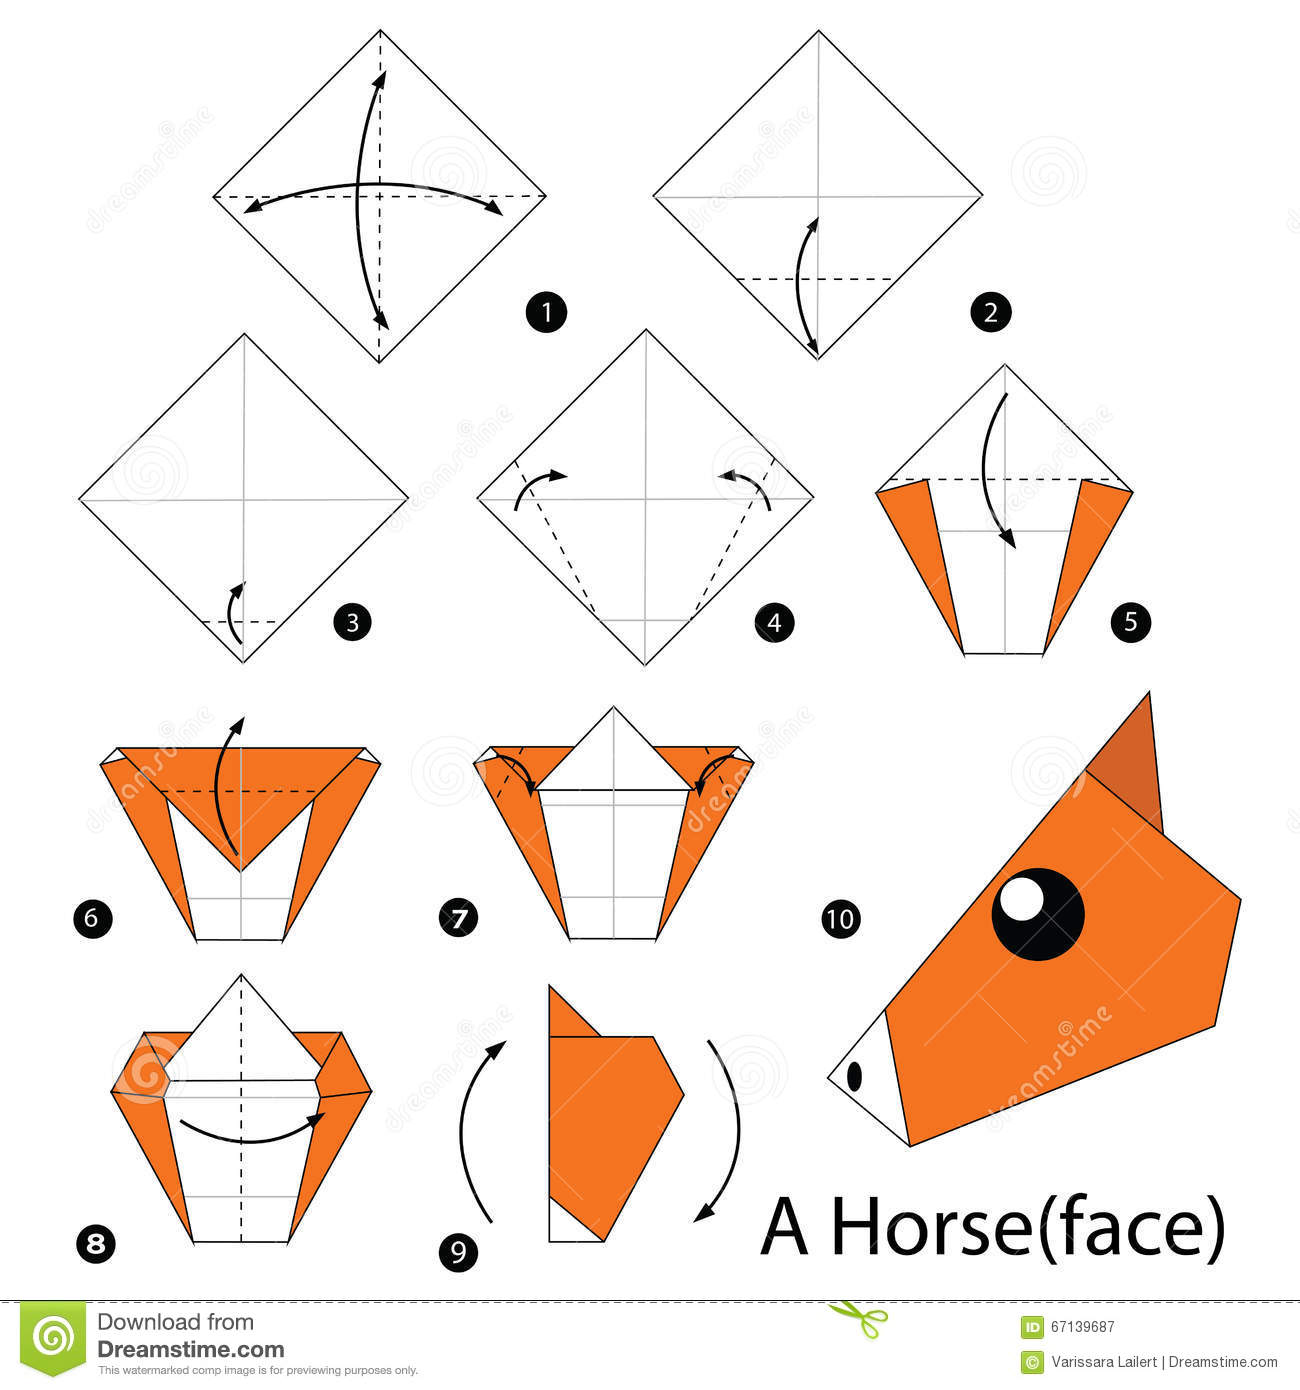 How To Make An Origami Fox Face Step By Step